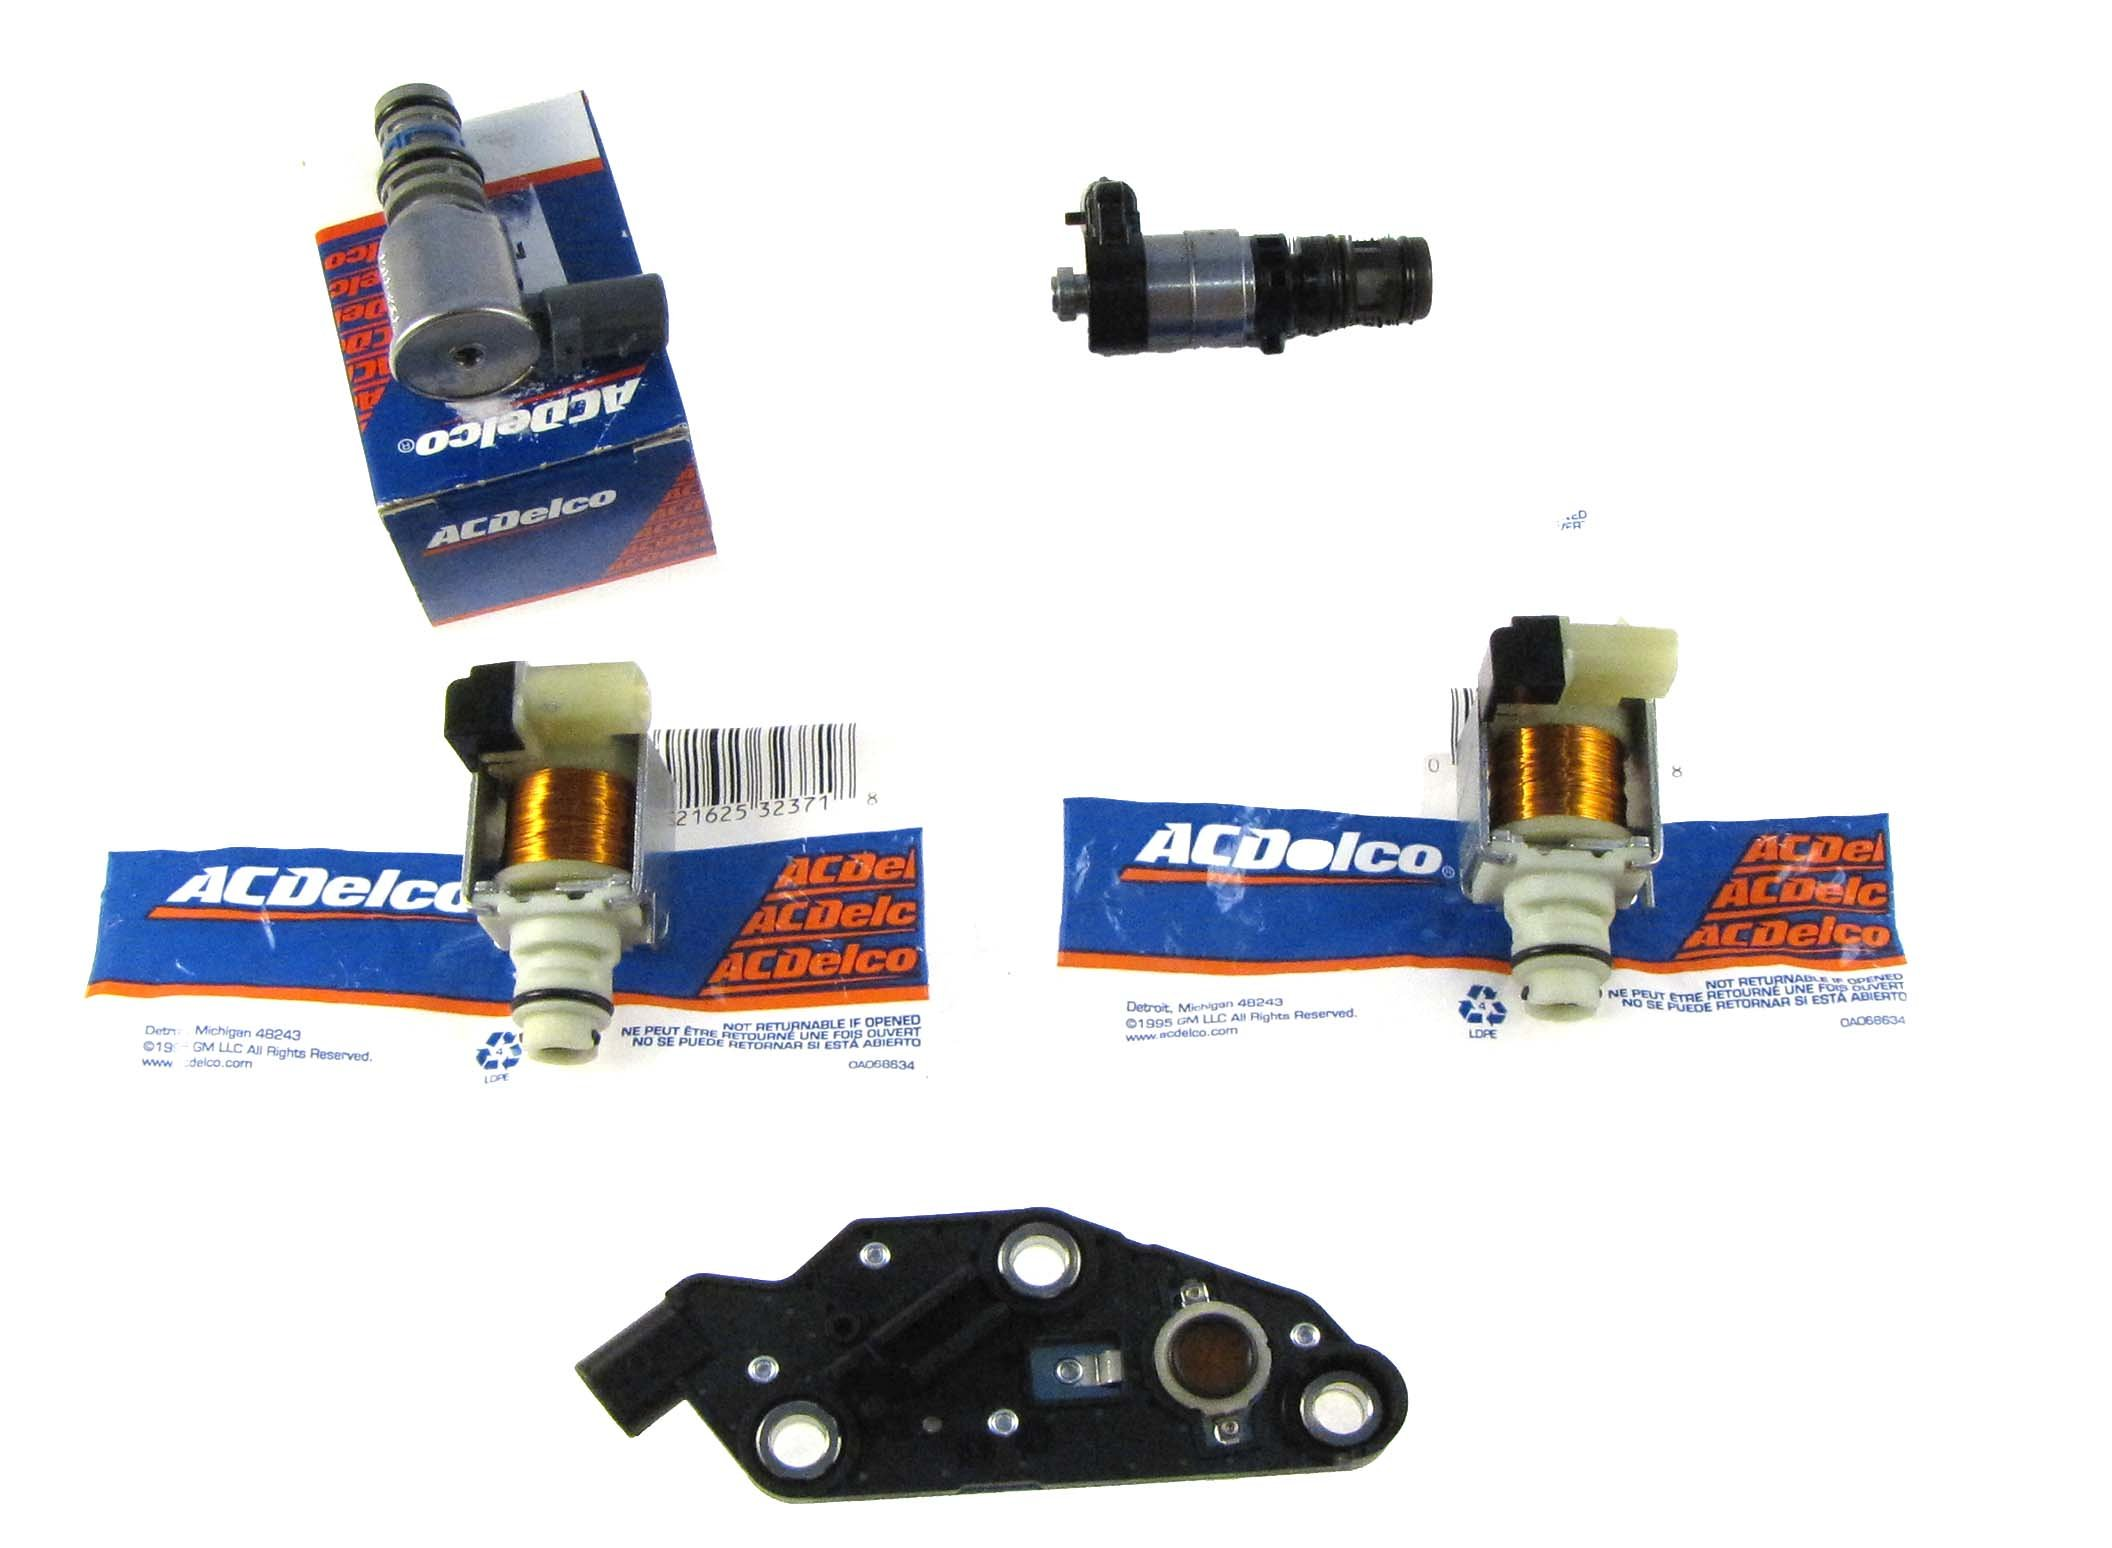 GM 4T65E 5 Piece Solenoid Set, 1 Pressure Switch Style